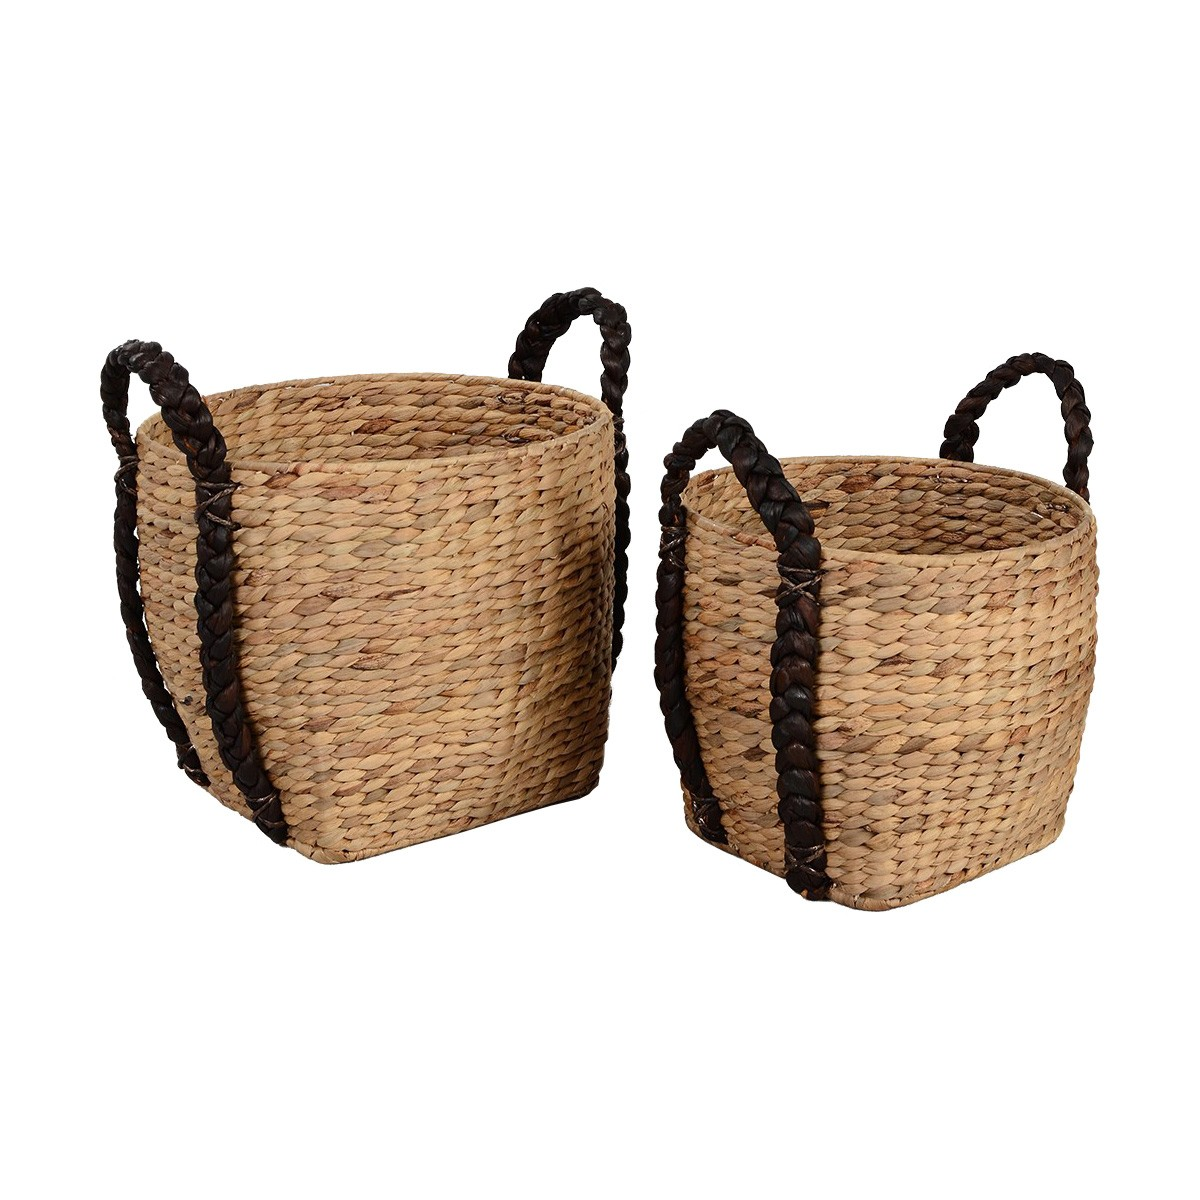 Juara 2 Piece Woven Water Hyacinth Basket Set